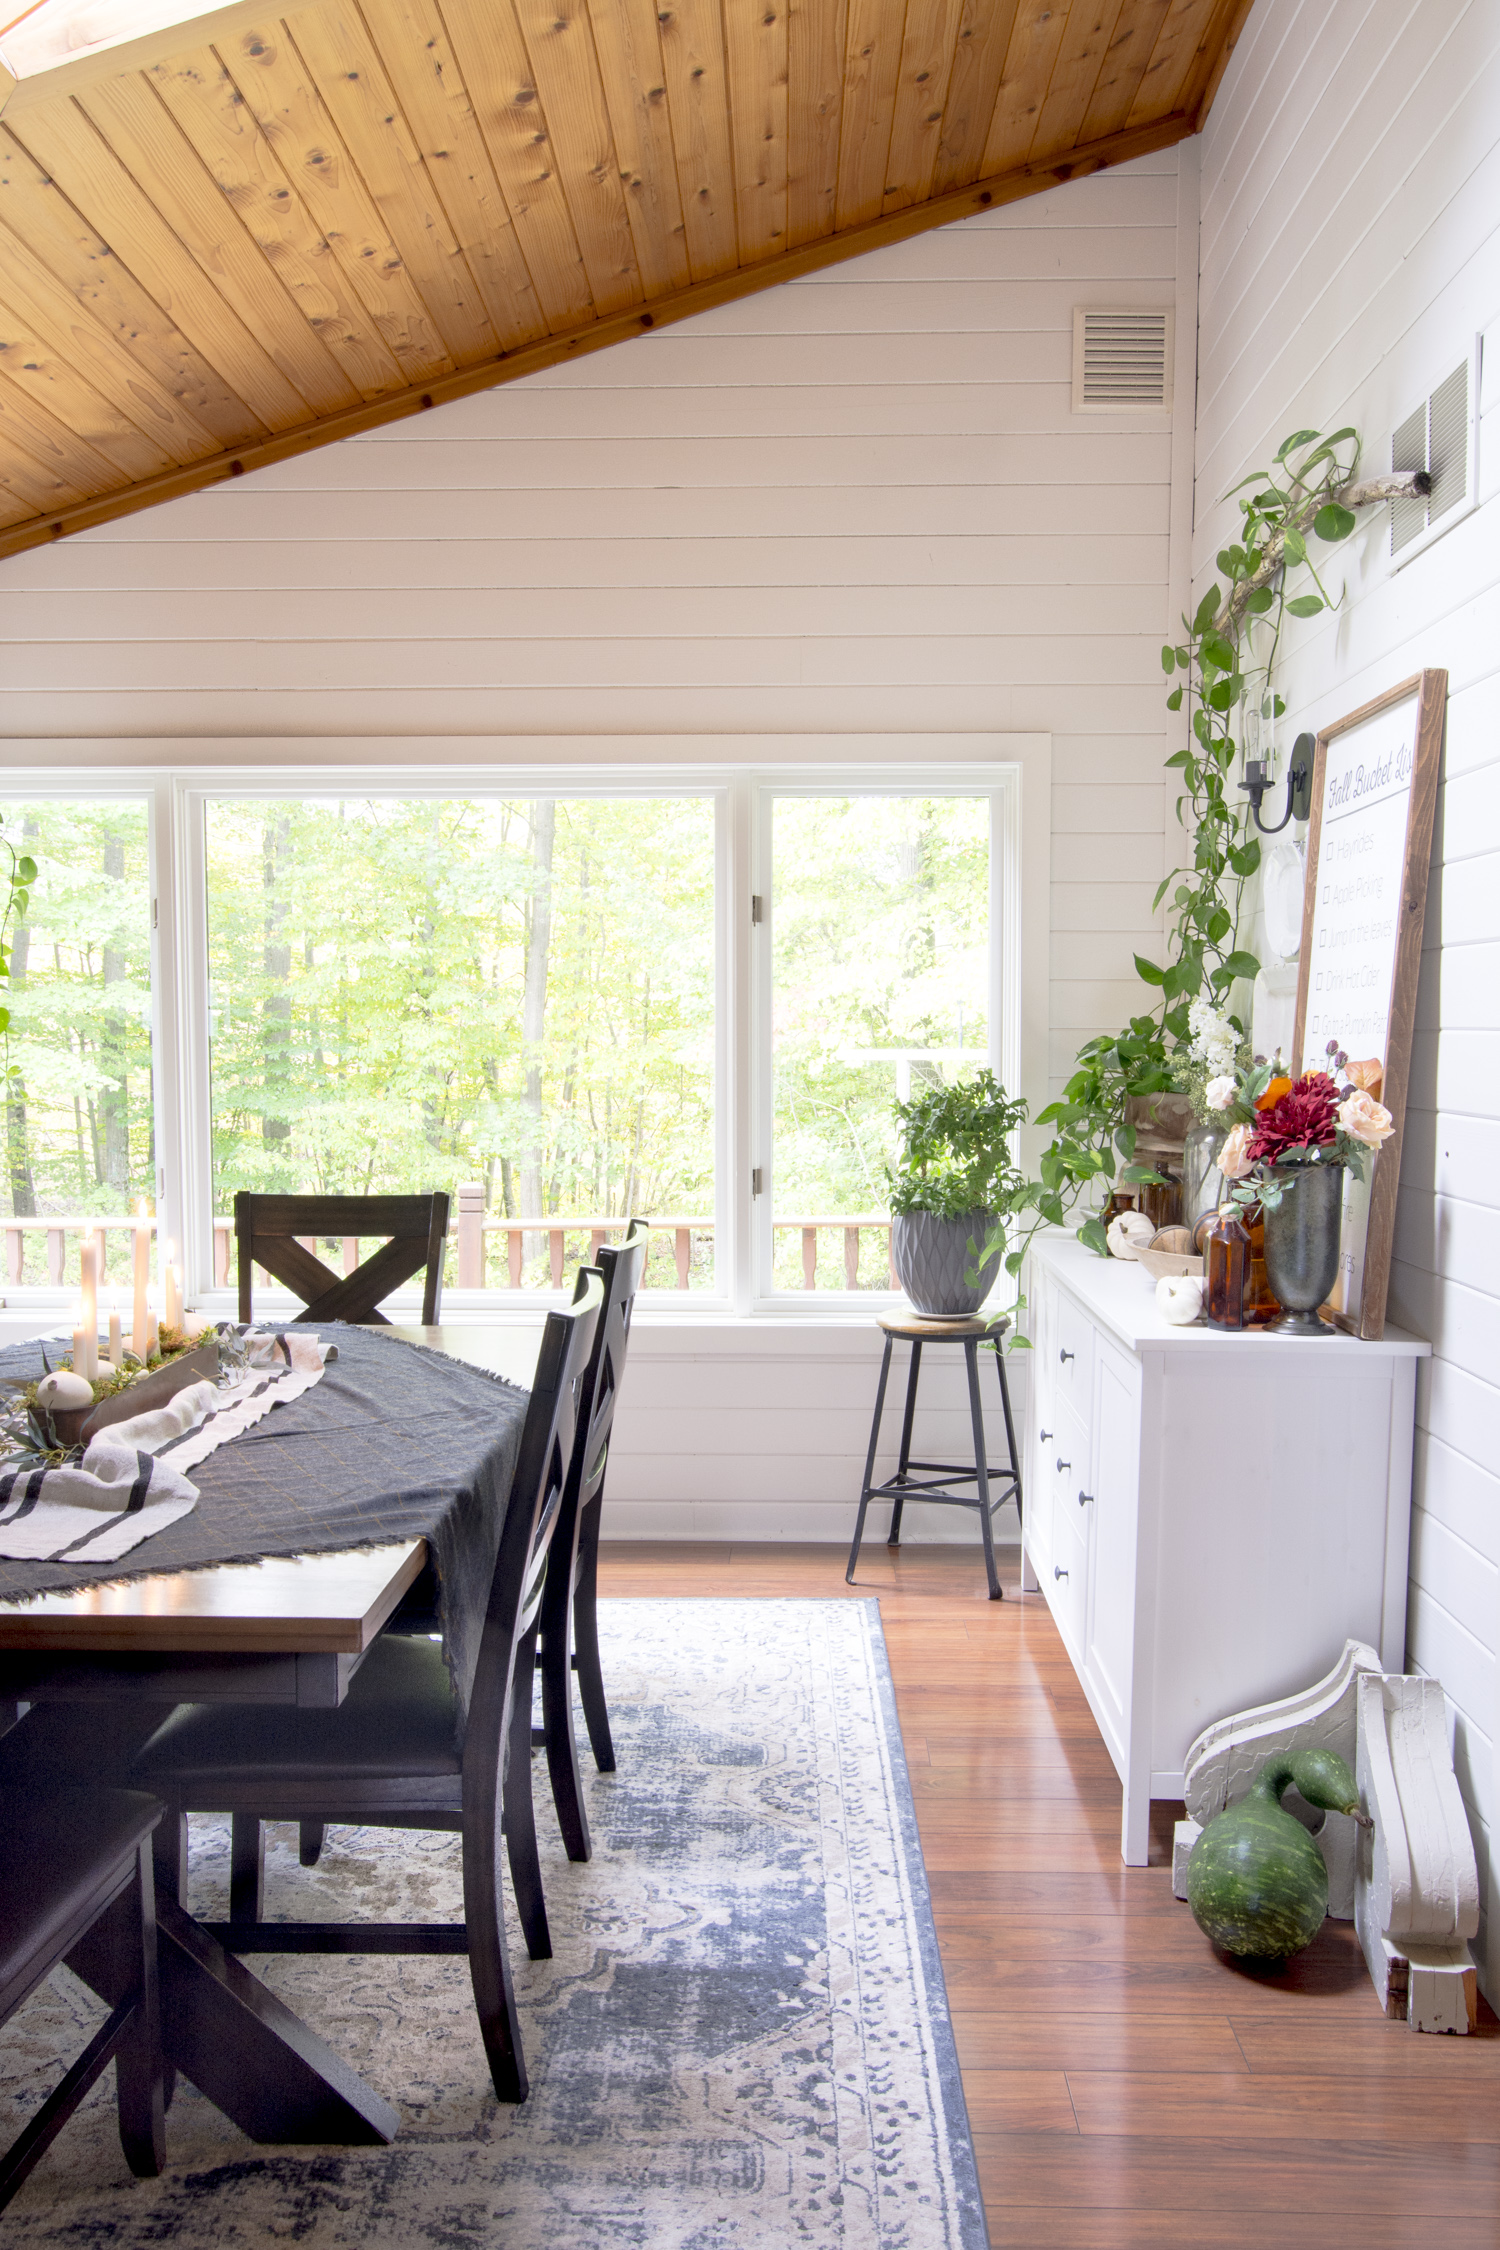 Love the natural wood shiplap on the ceiling of this dining room kellyelko.com #homedecor #diningroom #diningroomdecor #farmhousedecor #interiordecor #diningroomfurniture